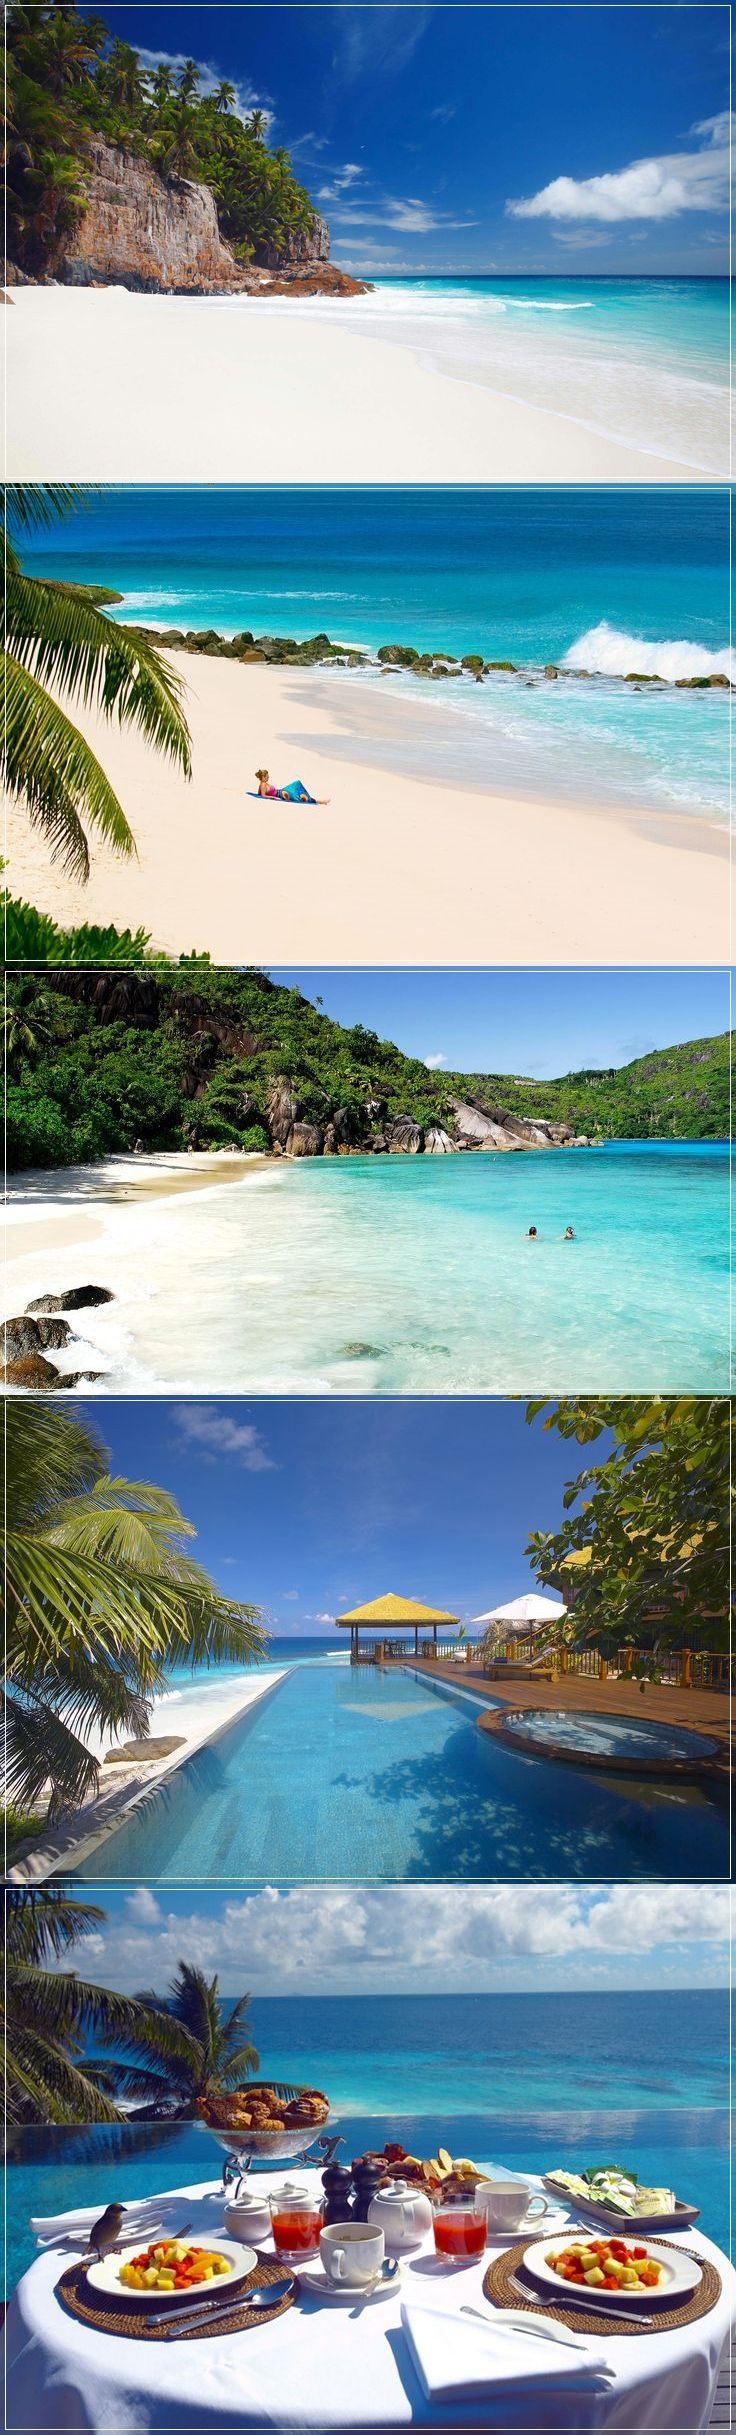 Fregate Island Private Seychelles is nominated as one of the best luxury resort for vacation. Come and experience the Luxury Resort from Fregate Island Private Seychelles at Fregate Island, Seychelles.